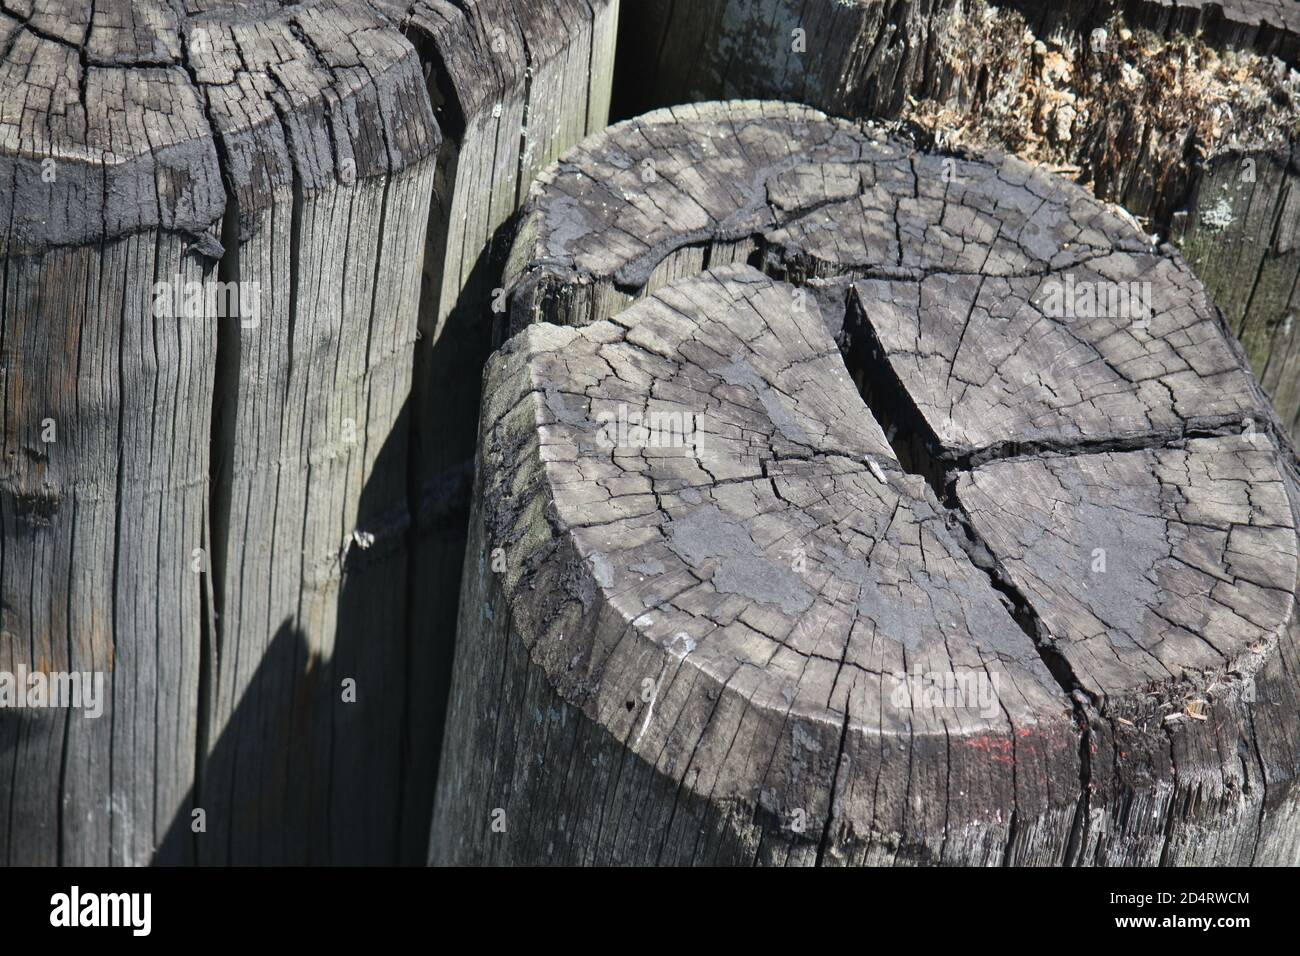 Wooden poles in New York Stock Photo